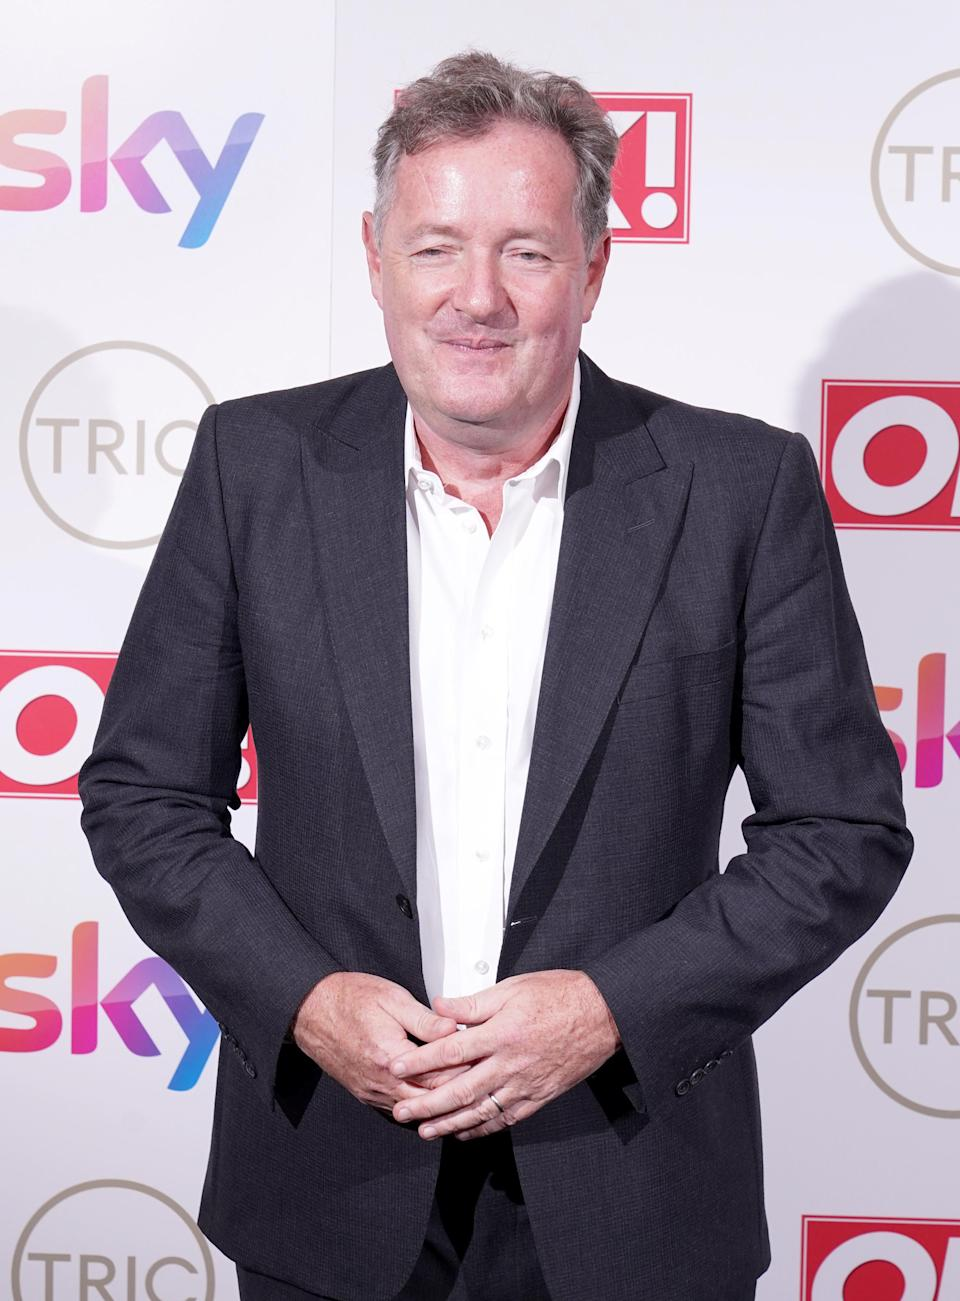 File photo dated 15/9/21 of Piers Morgan attending the TRIC Awards 2021. Mr Morgan's new TV show will be directed by his former Good Morning Britain colleague Erron Gordon, it has been announced. The TV show will air on weeknights in the UK, US and Australia, and Morgan will also present a series of true crime documentaries.